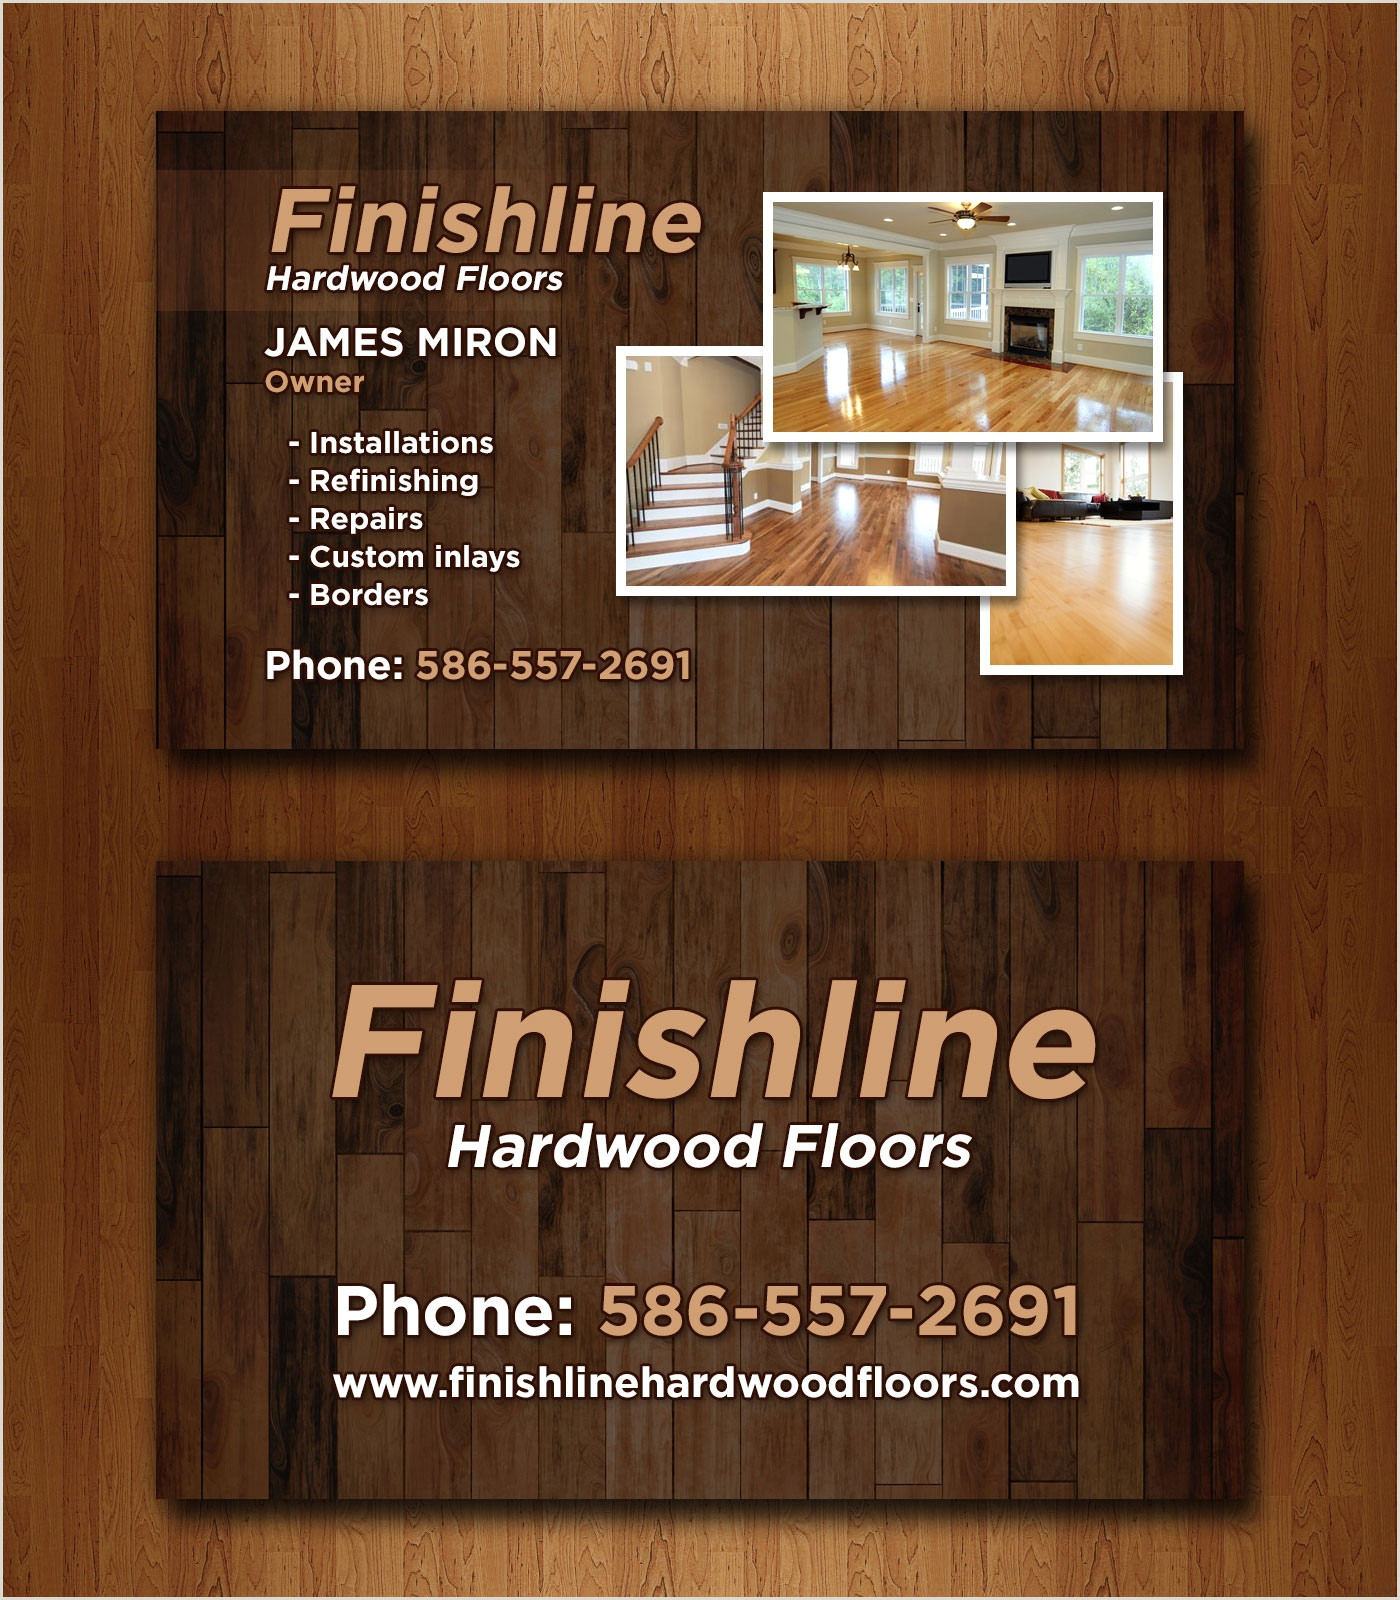 How To Make A Great Business Card 14 Popular Hardwood Flooring Business Card Template